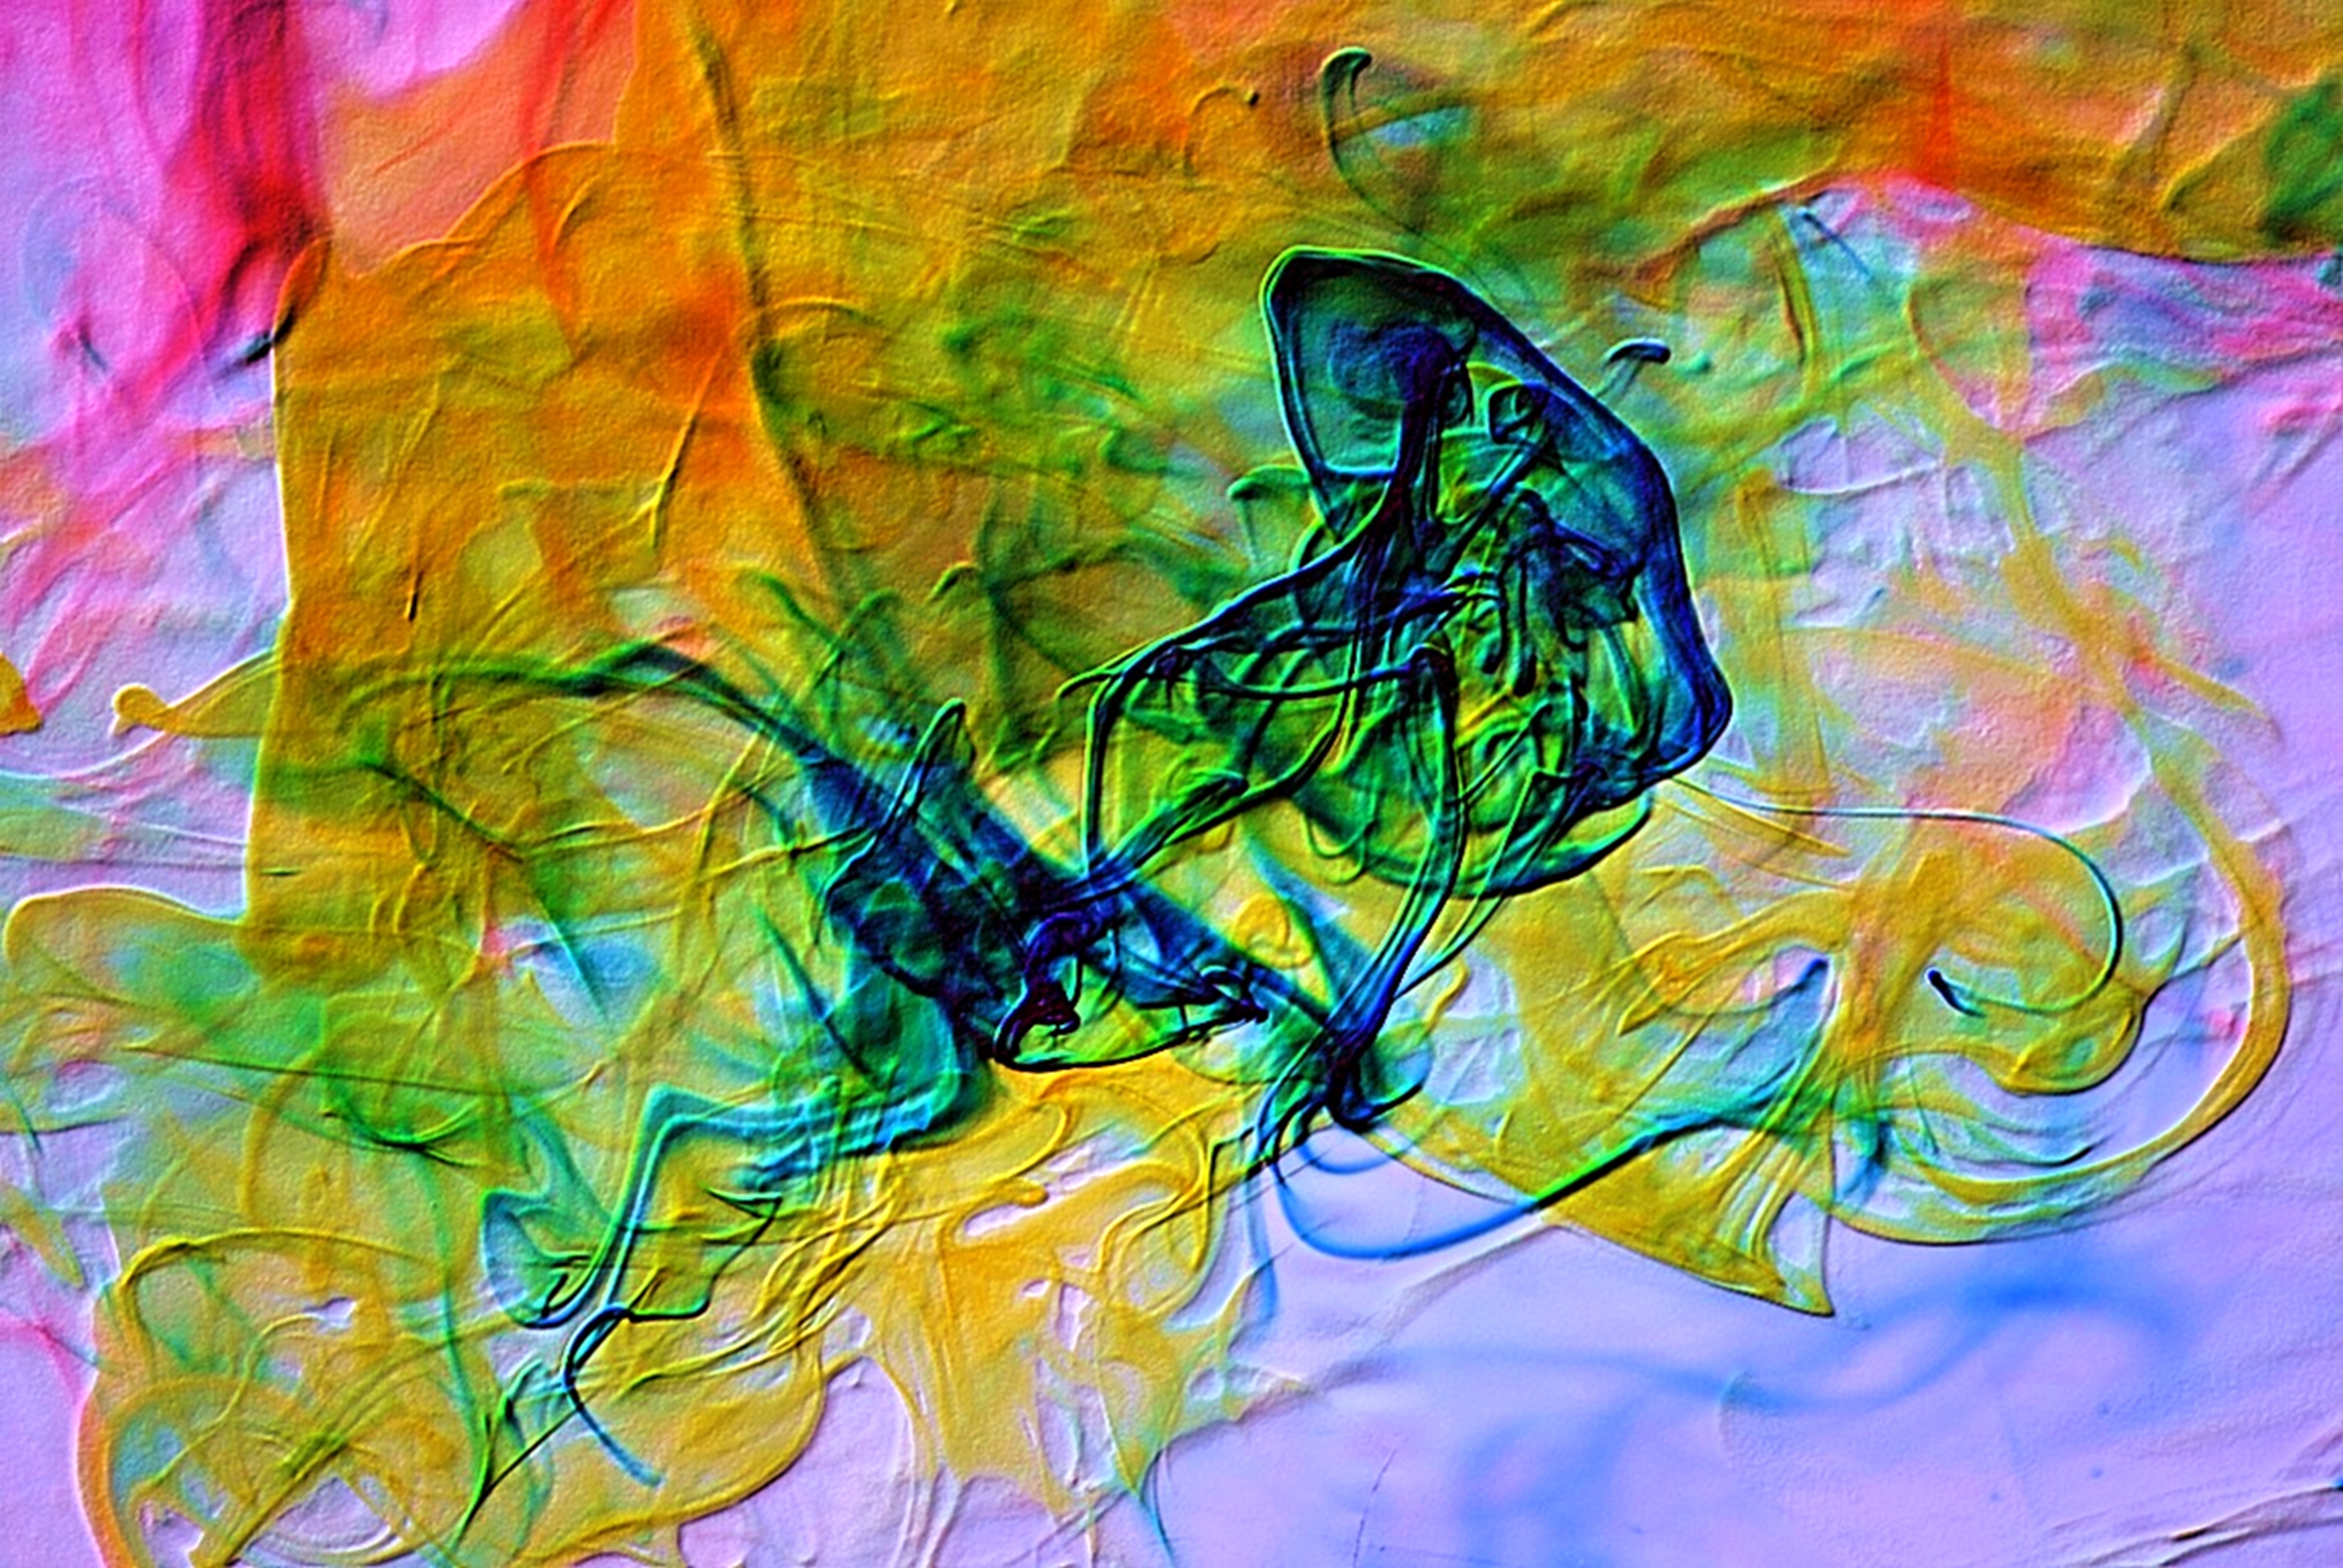 Abstract Photograph: 'Letters from Jellyfish' by artist and photographer John Russell